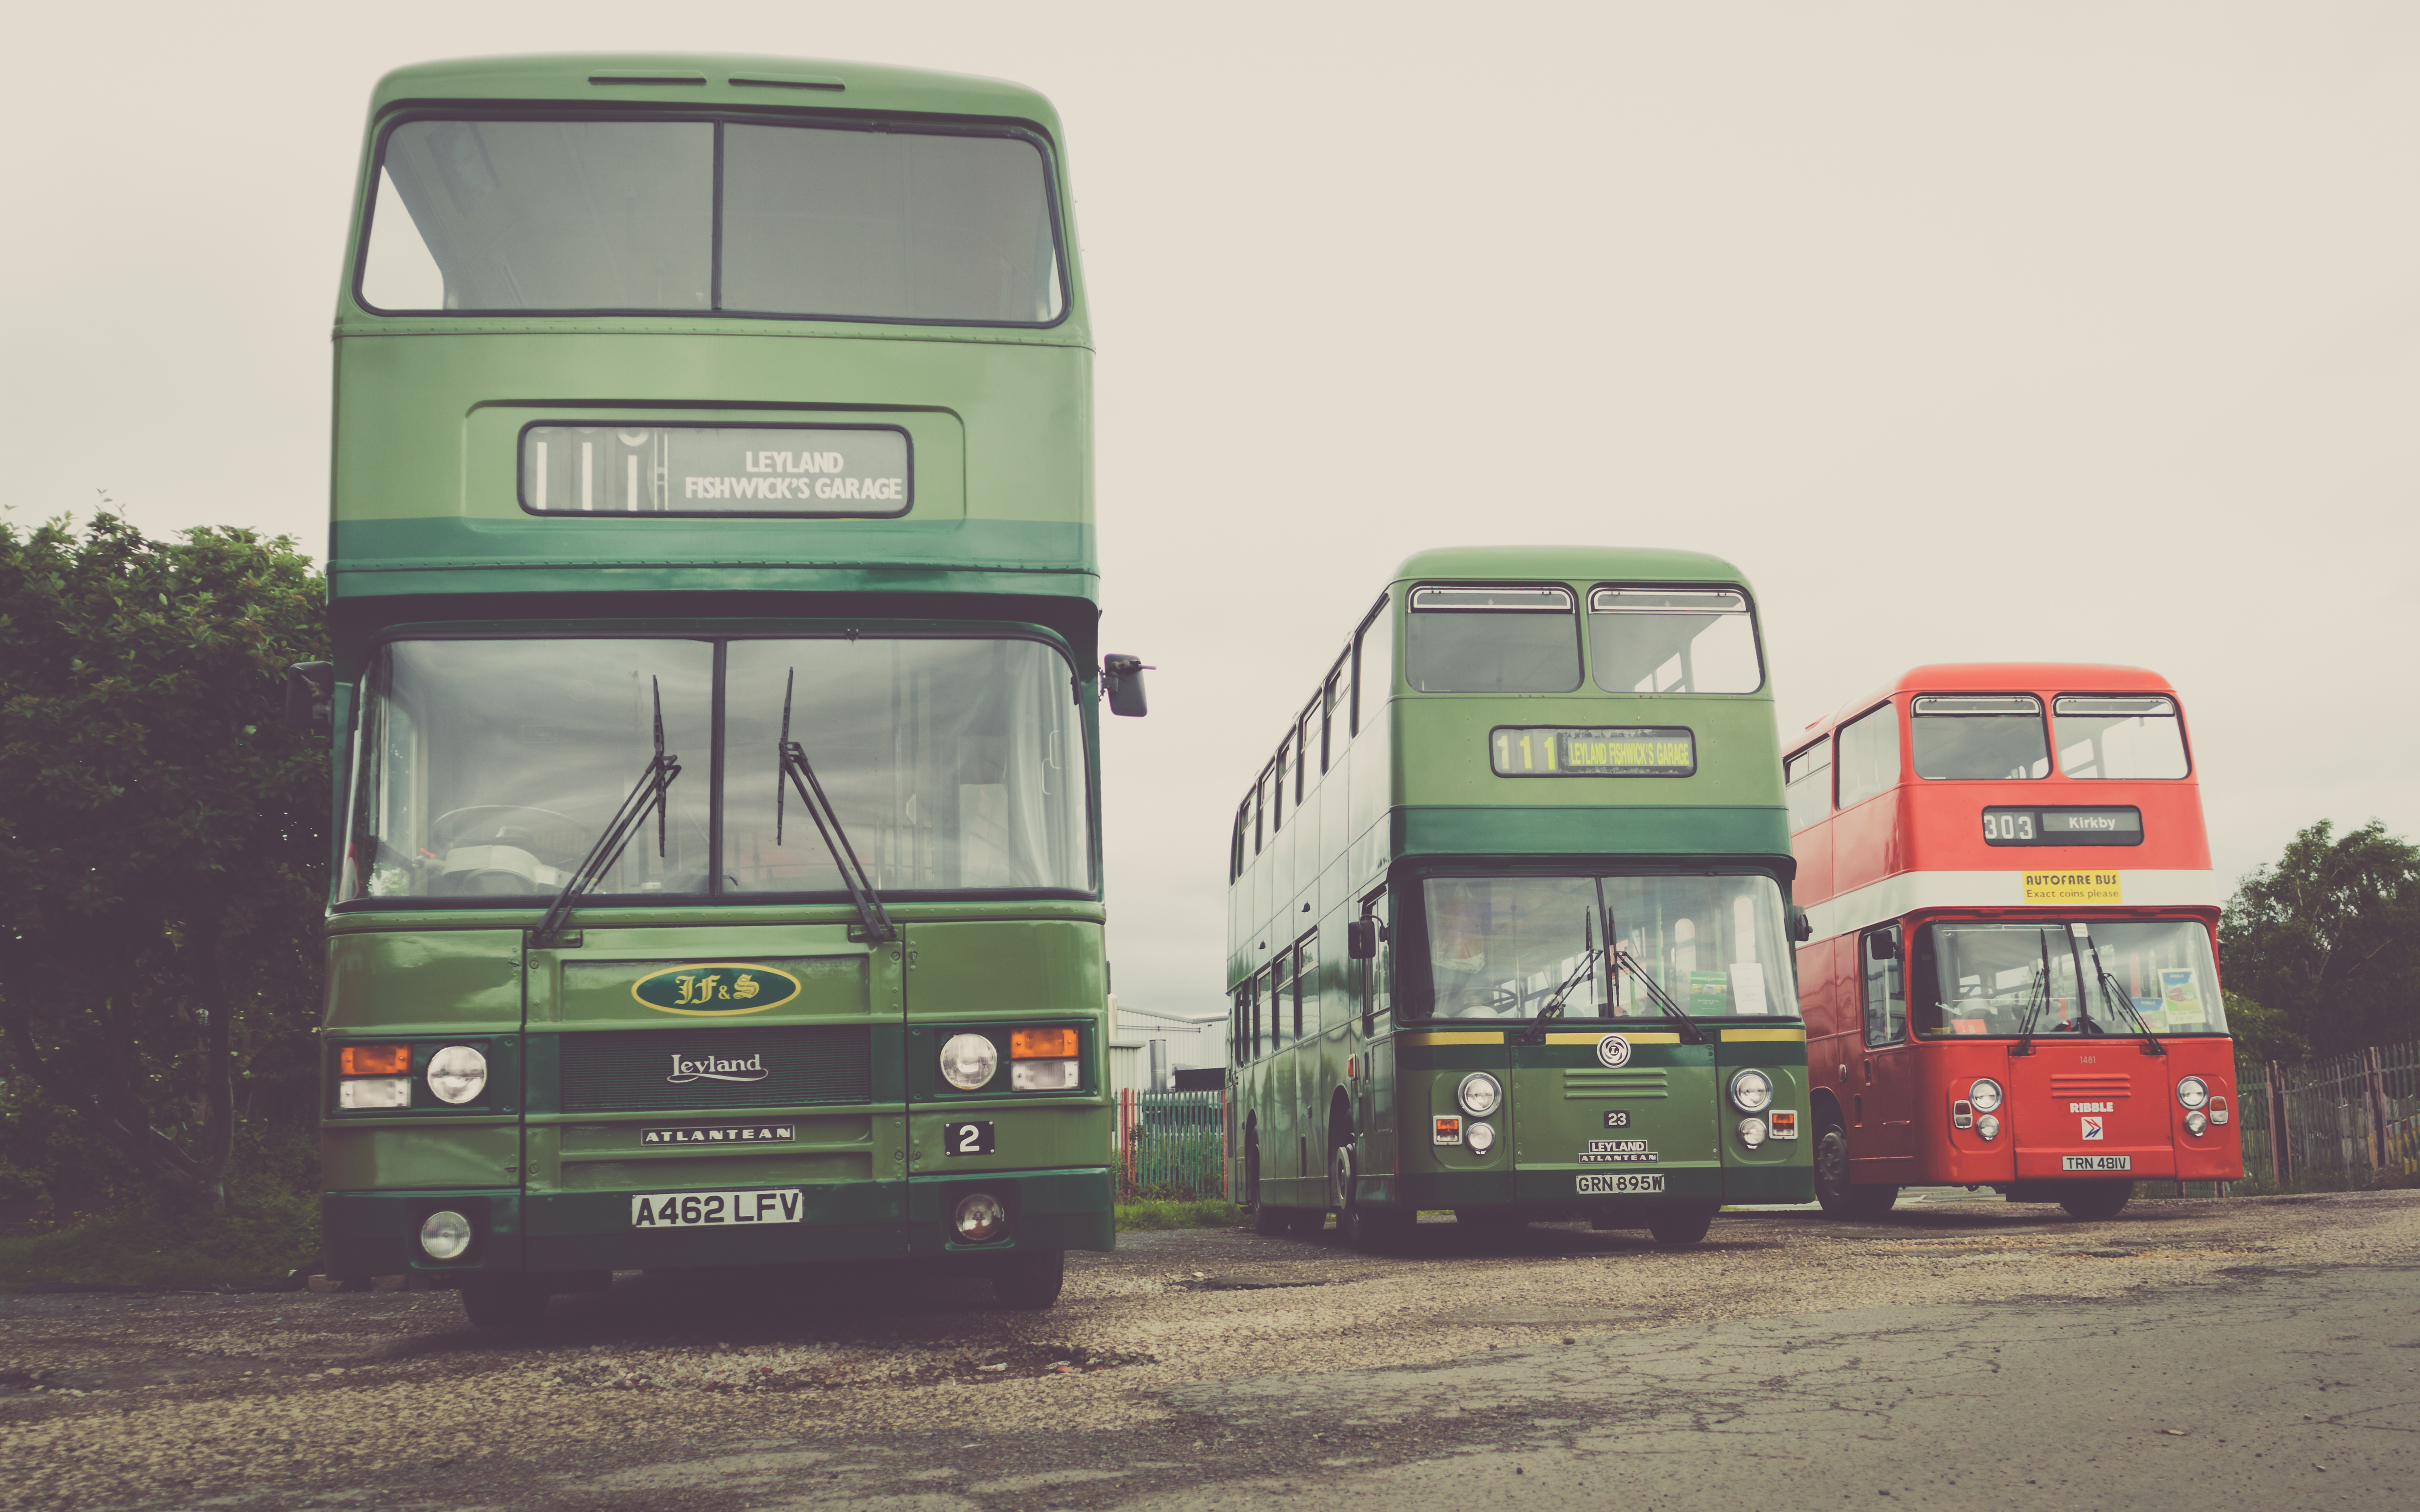 Three double deckers